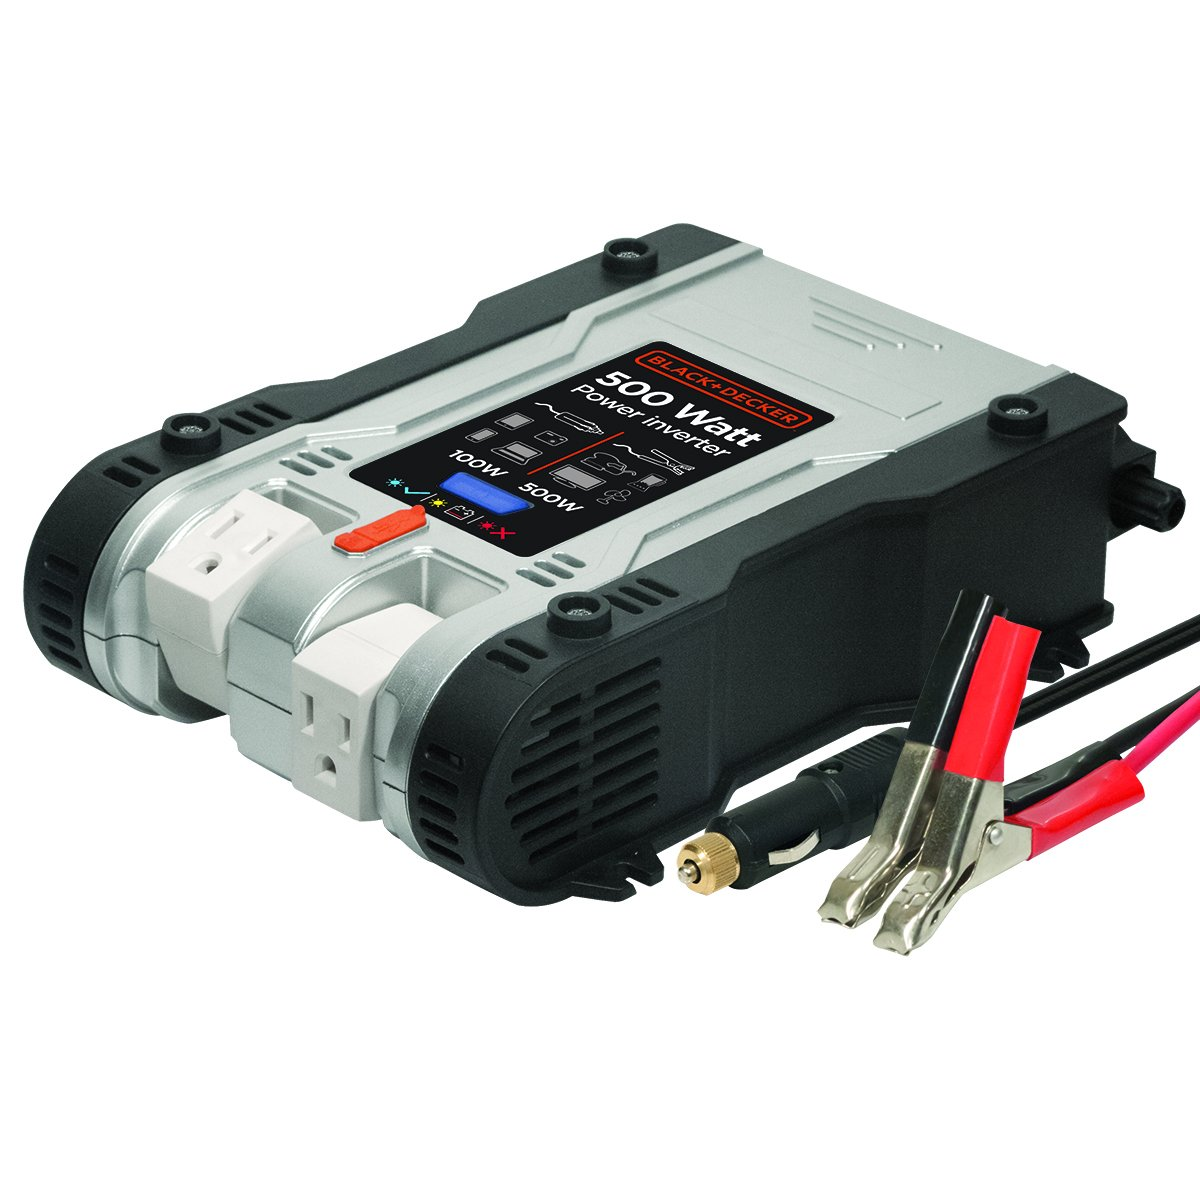 BLACK+DECKER PI500P 500W Power Inverter: Dual Pivoting 120V AC Outlets, 2A USB Port, 12V DC Adapter, Battery Clamps